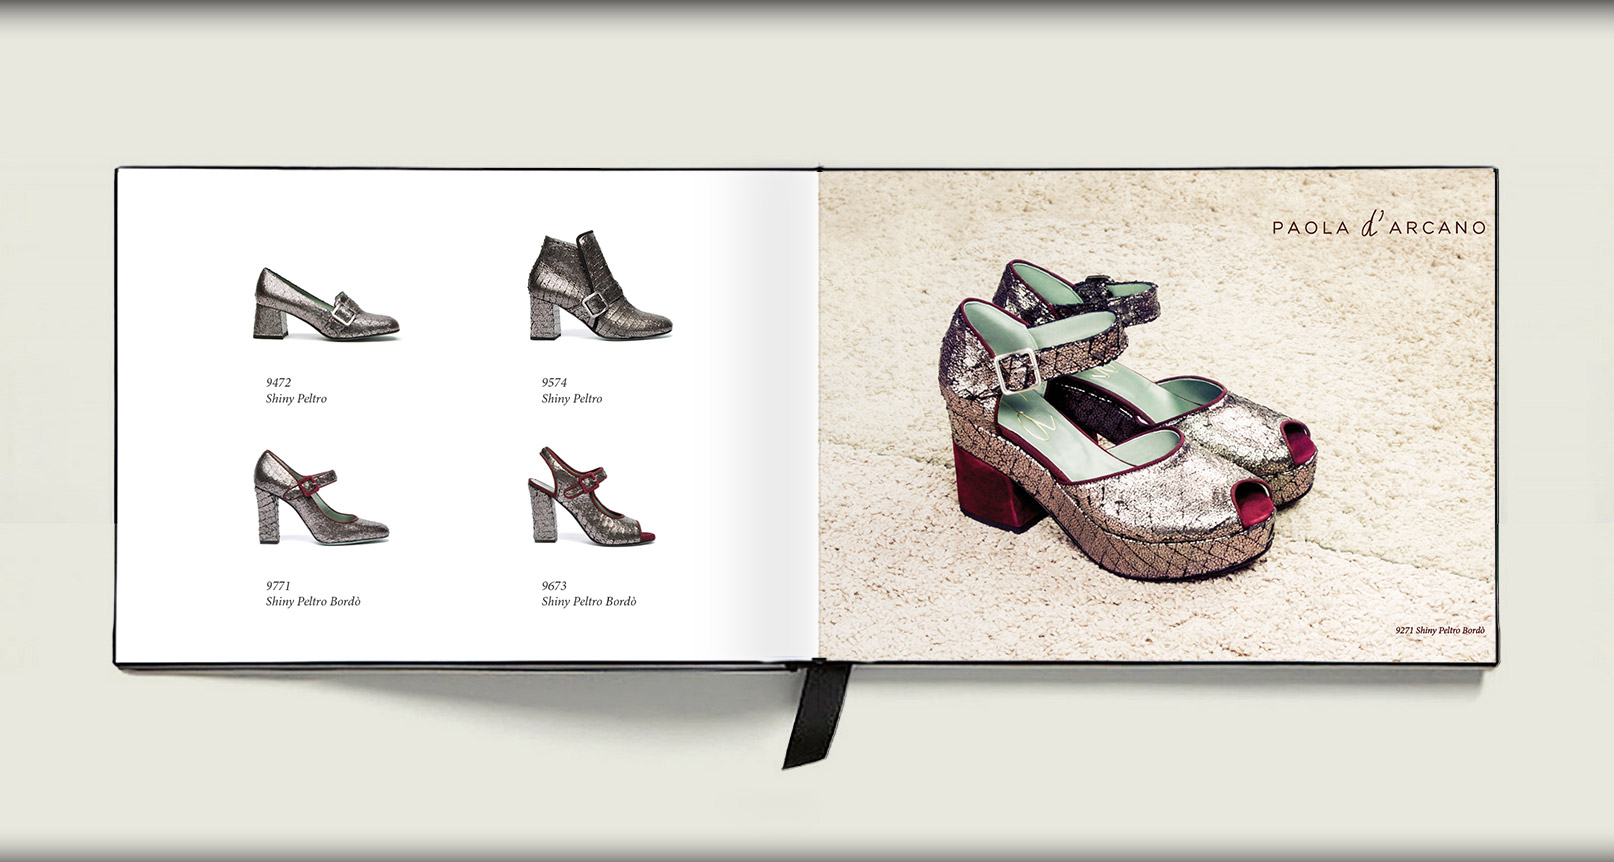 Advertising Paola D'Arcano Shoes Made in Italy - 5